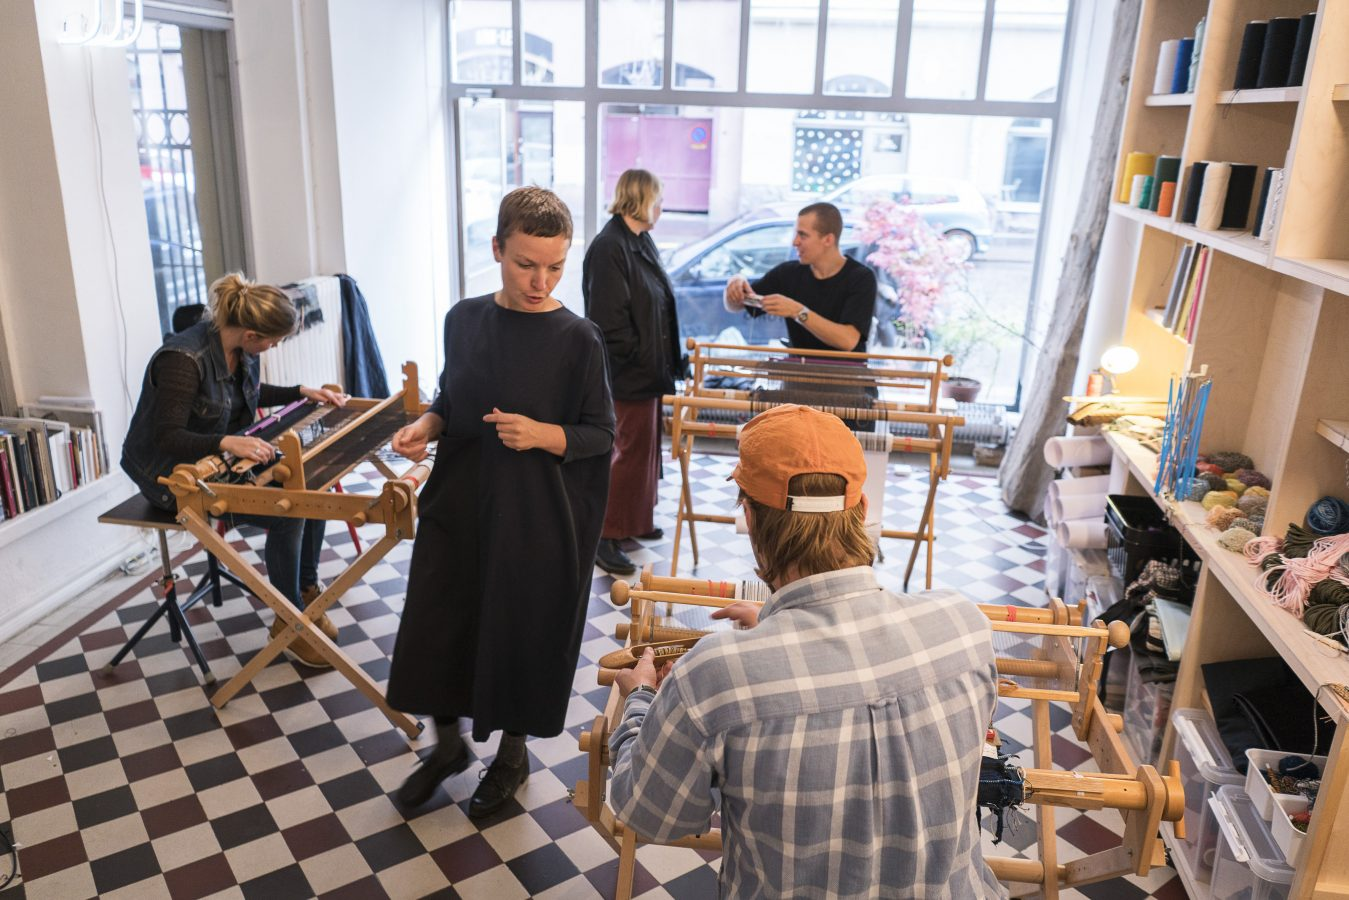 Helsinki Design Week 2018 For The Do It Learn More At Yourself Help Com Stitching Your Own Bag Preparing Soap Or Making Photobook Here Weve Listed Tips That Will You Get